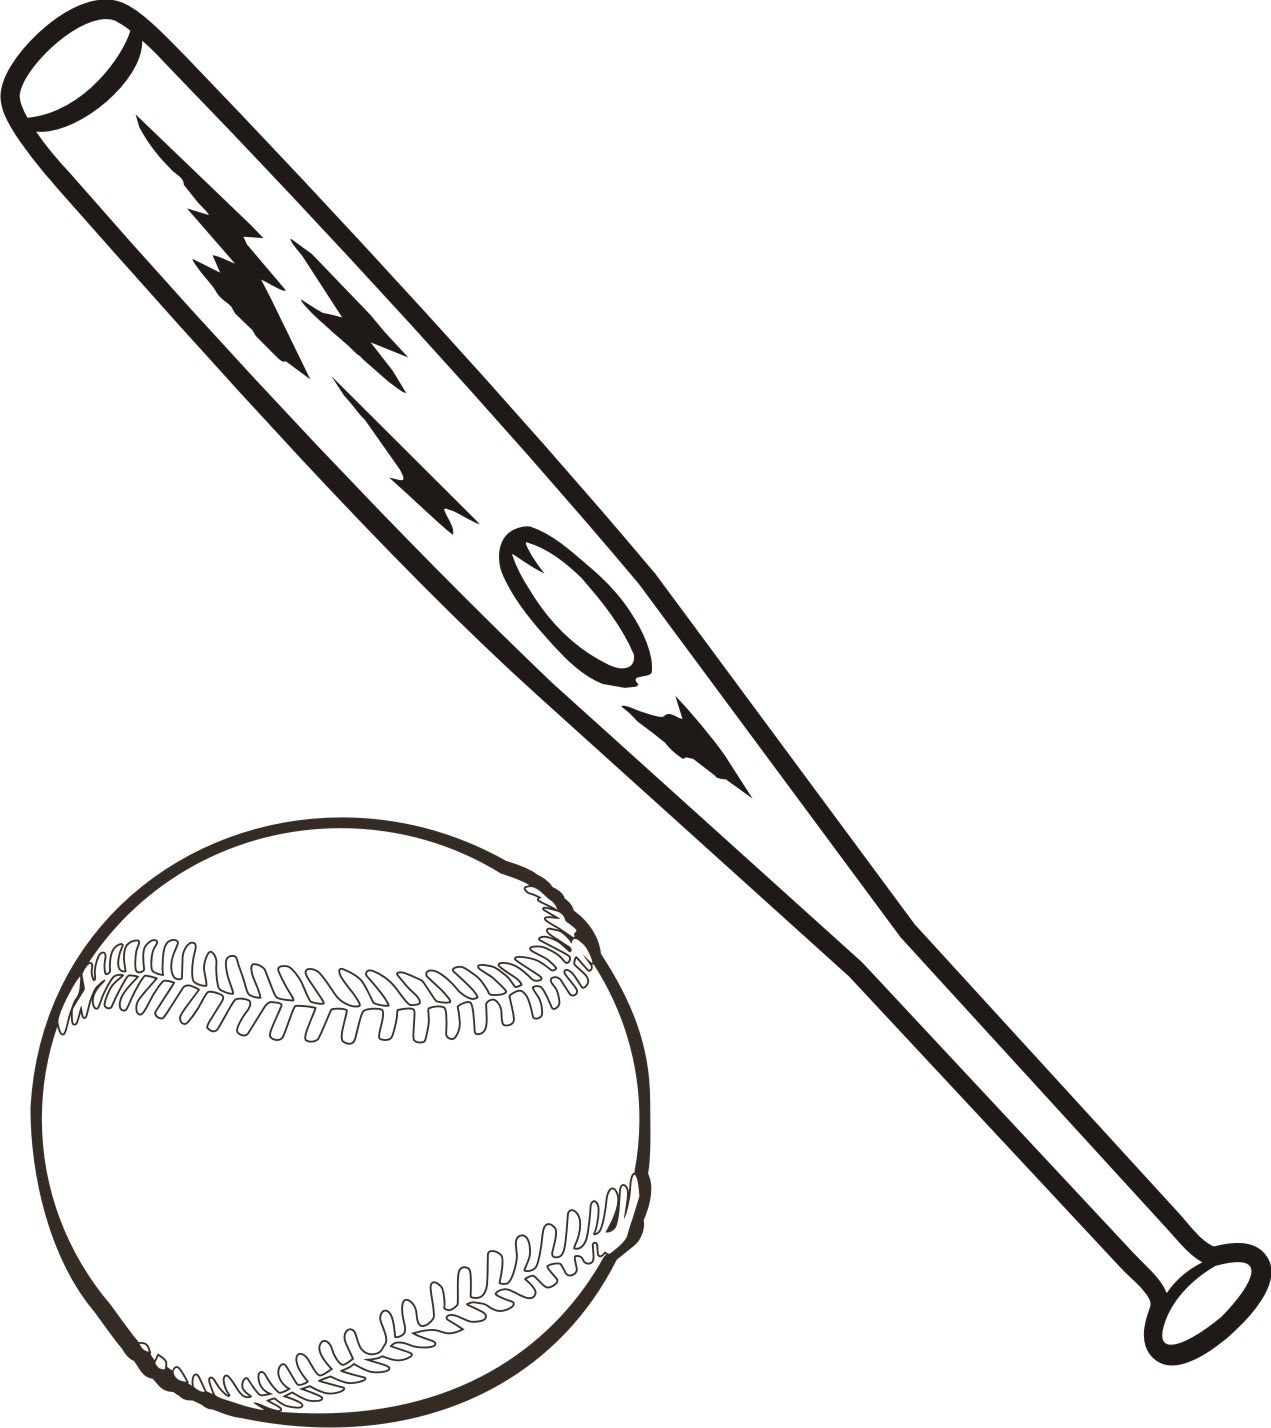 Bat and ball clipart black and white 3 » Clipart Portal.